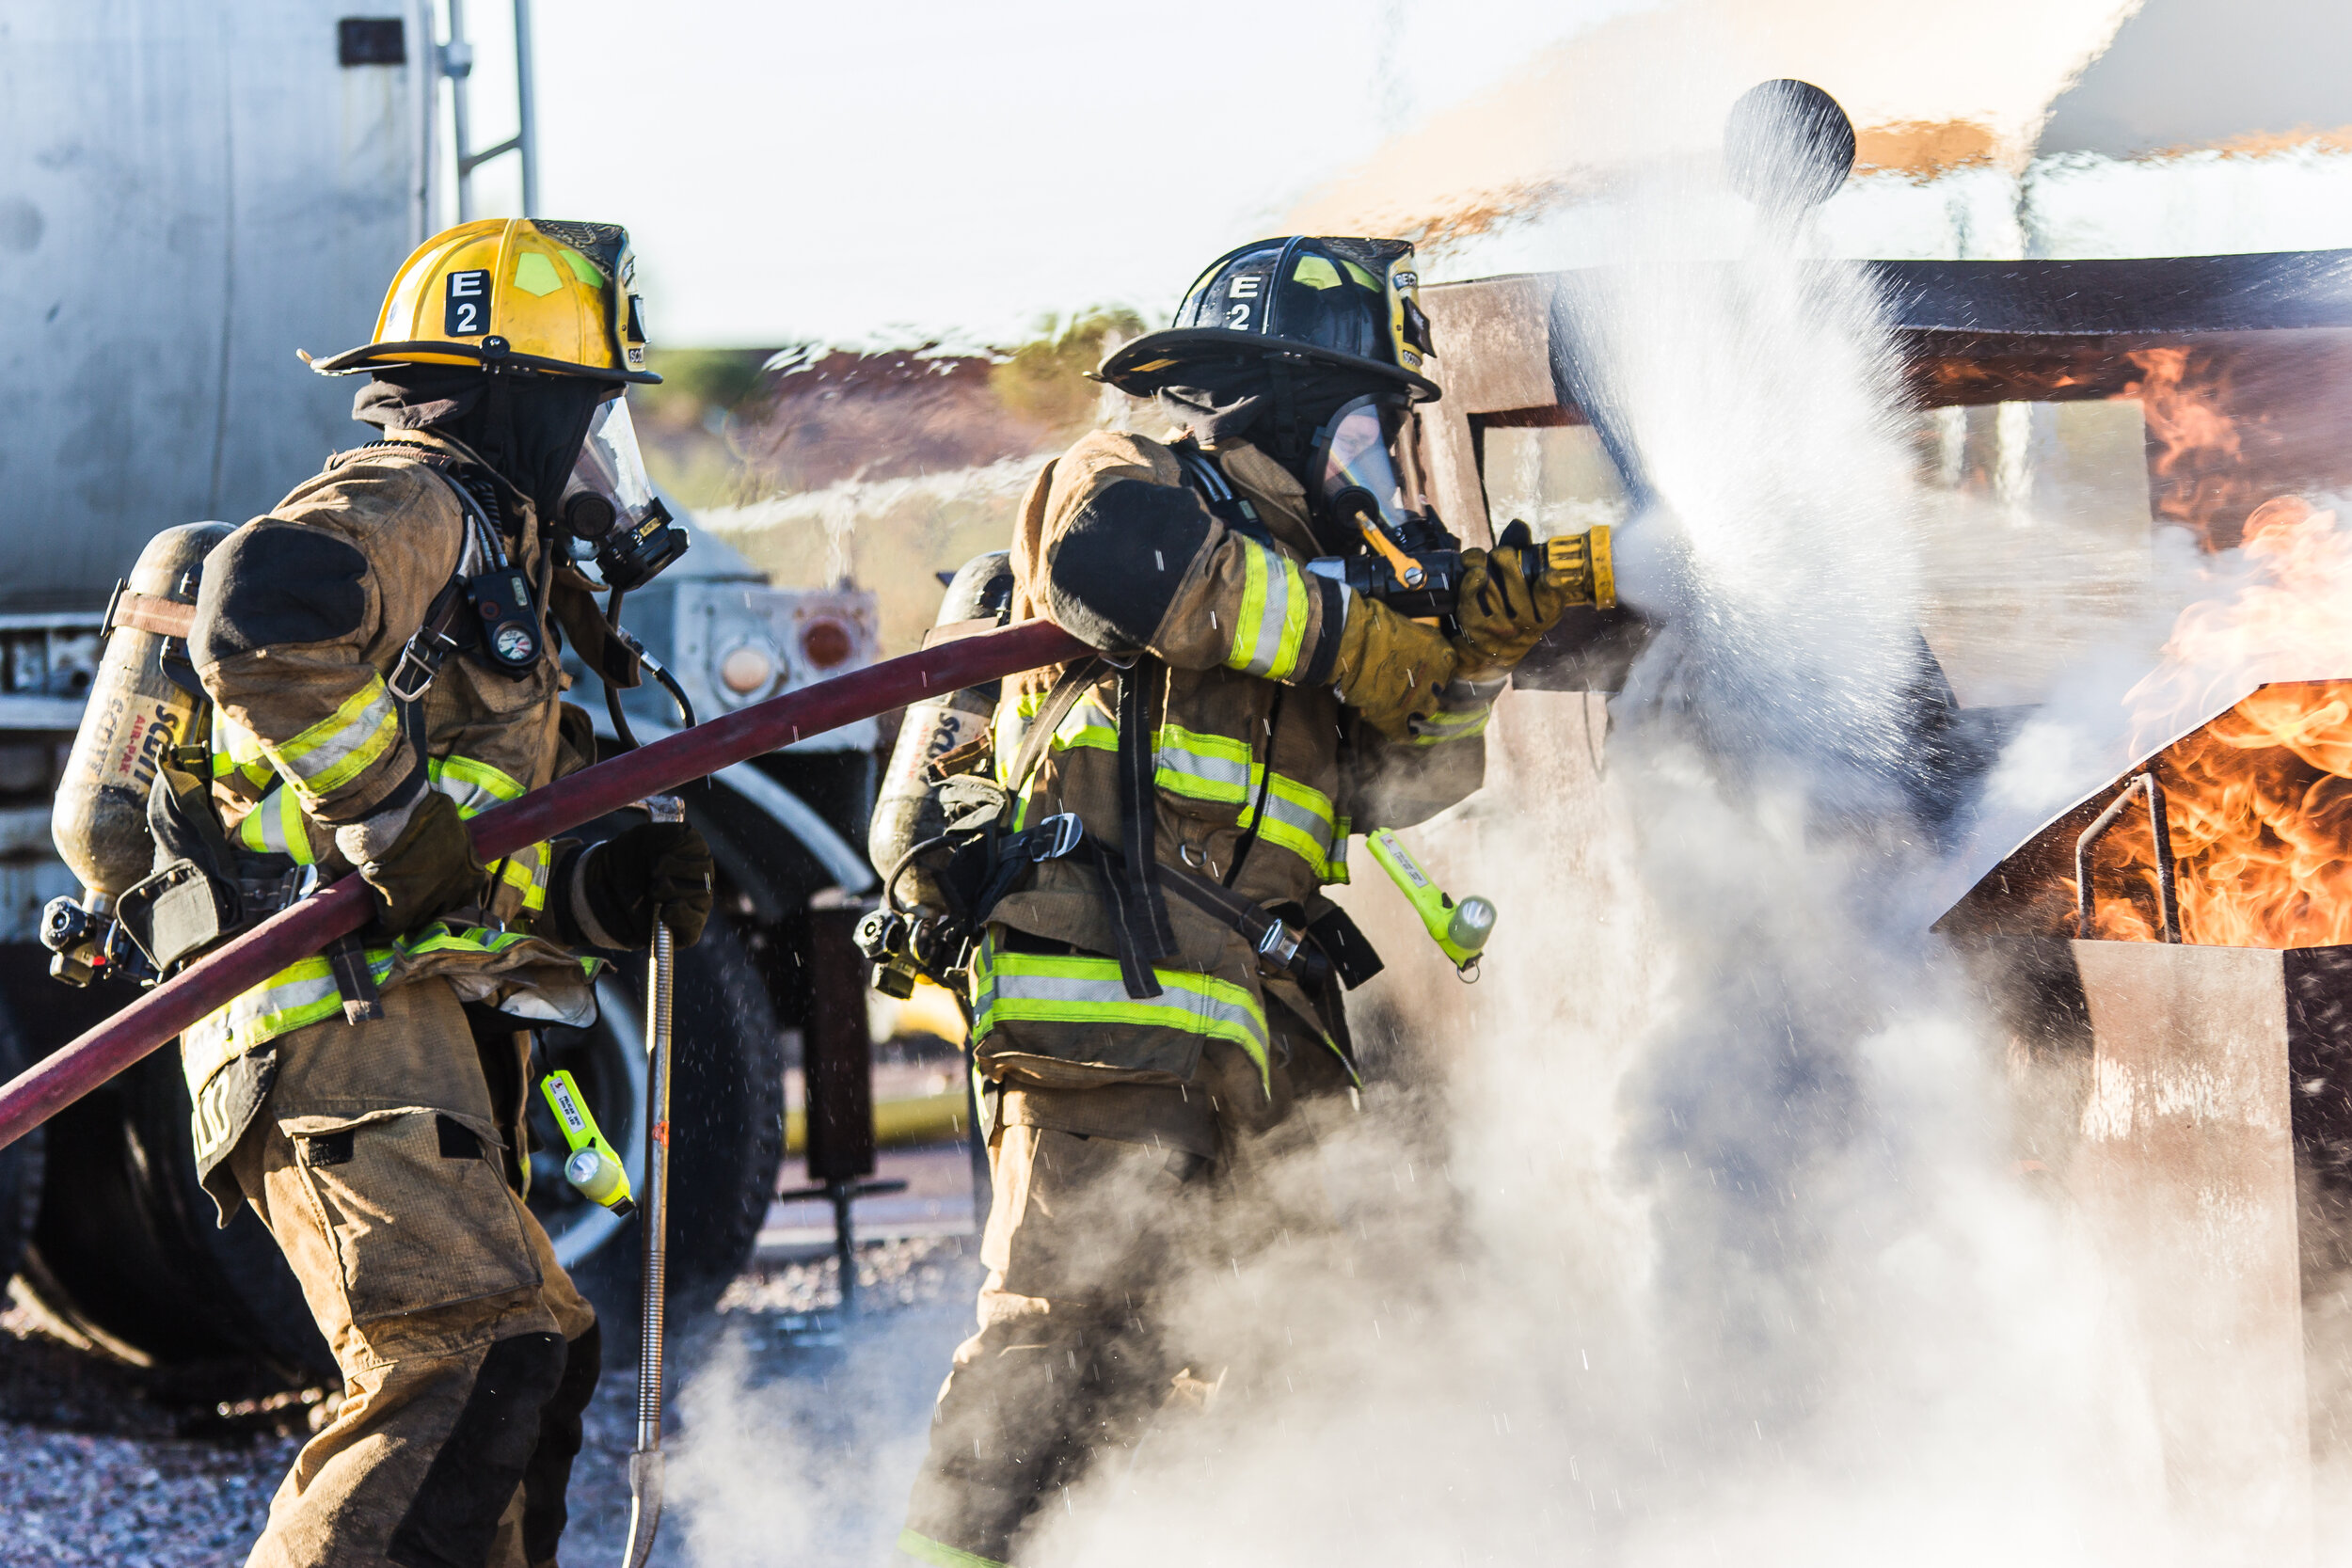 FIRE FIGHTING AND FIRE PREVENTION - Course Duration:3 DaysCourse Certification: Certificate of Completion                                       Assessment:Written assessment & practical evaluation.                                          Certification:SAMSA STCW Certificate of Completion.                                                Price: R2300